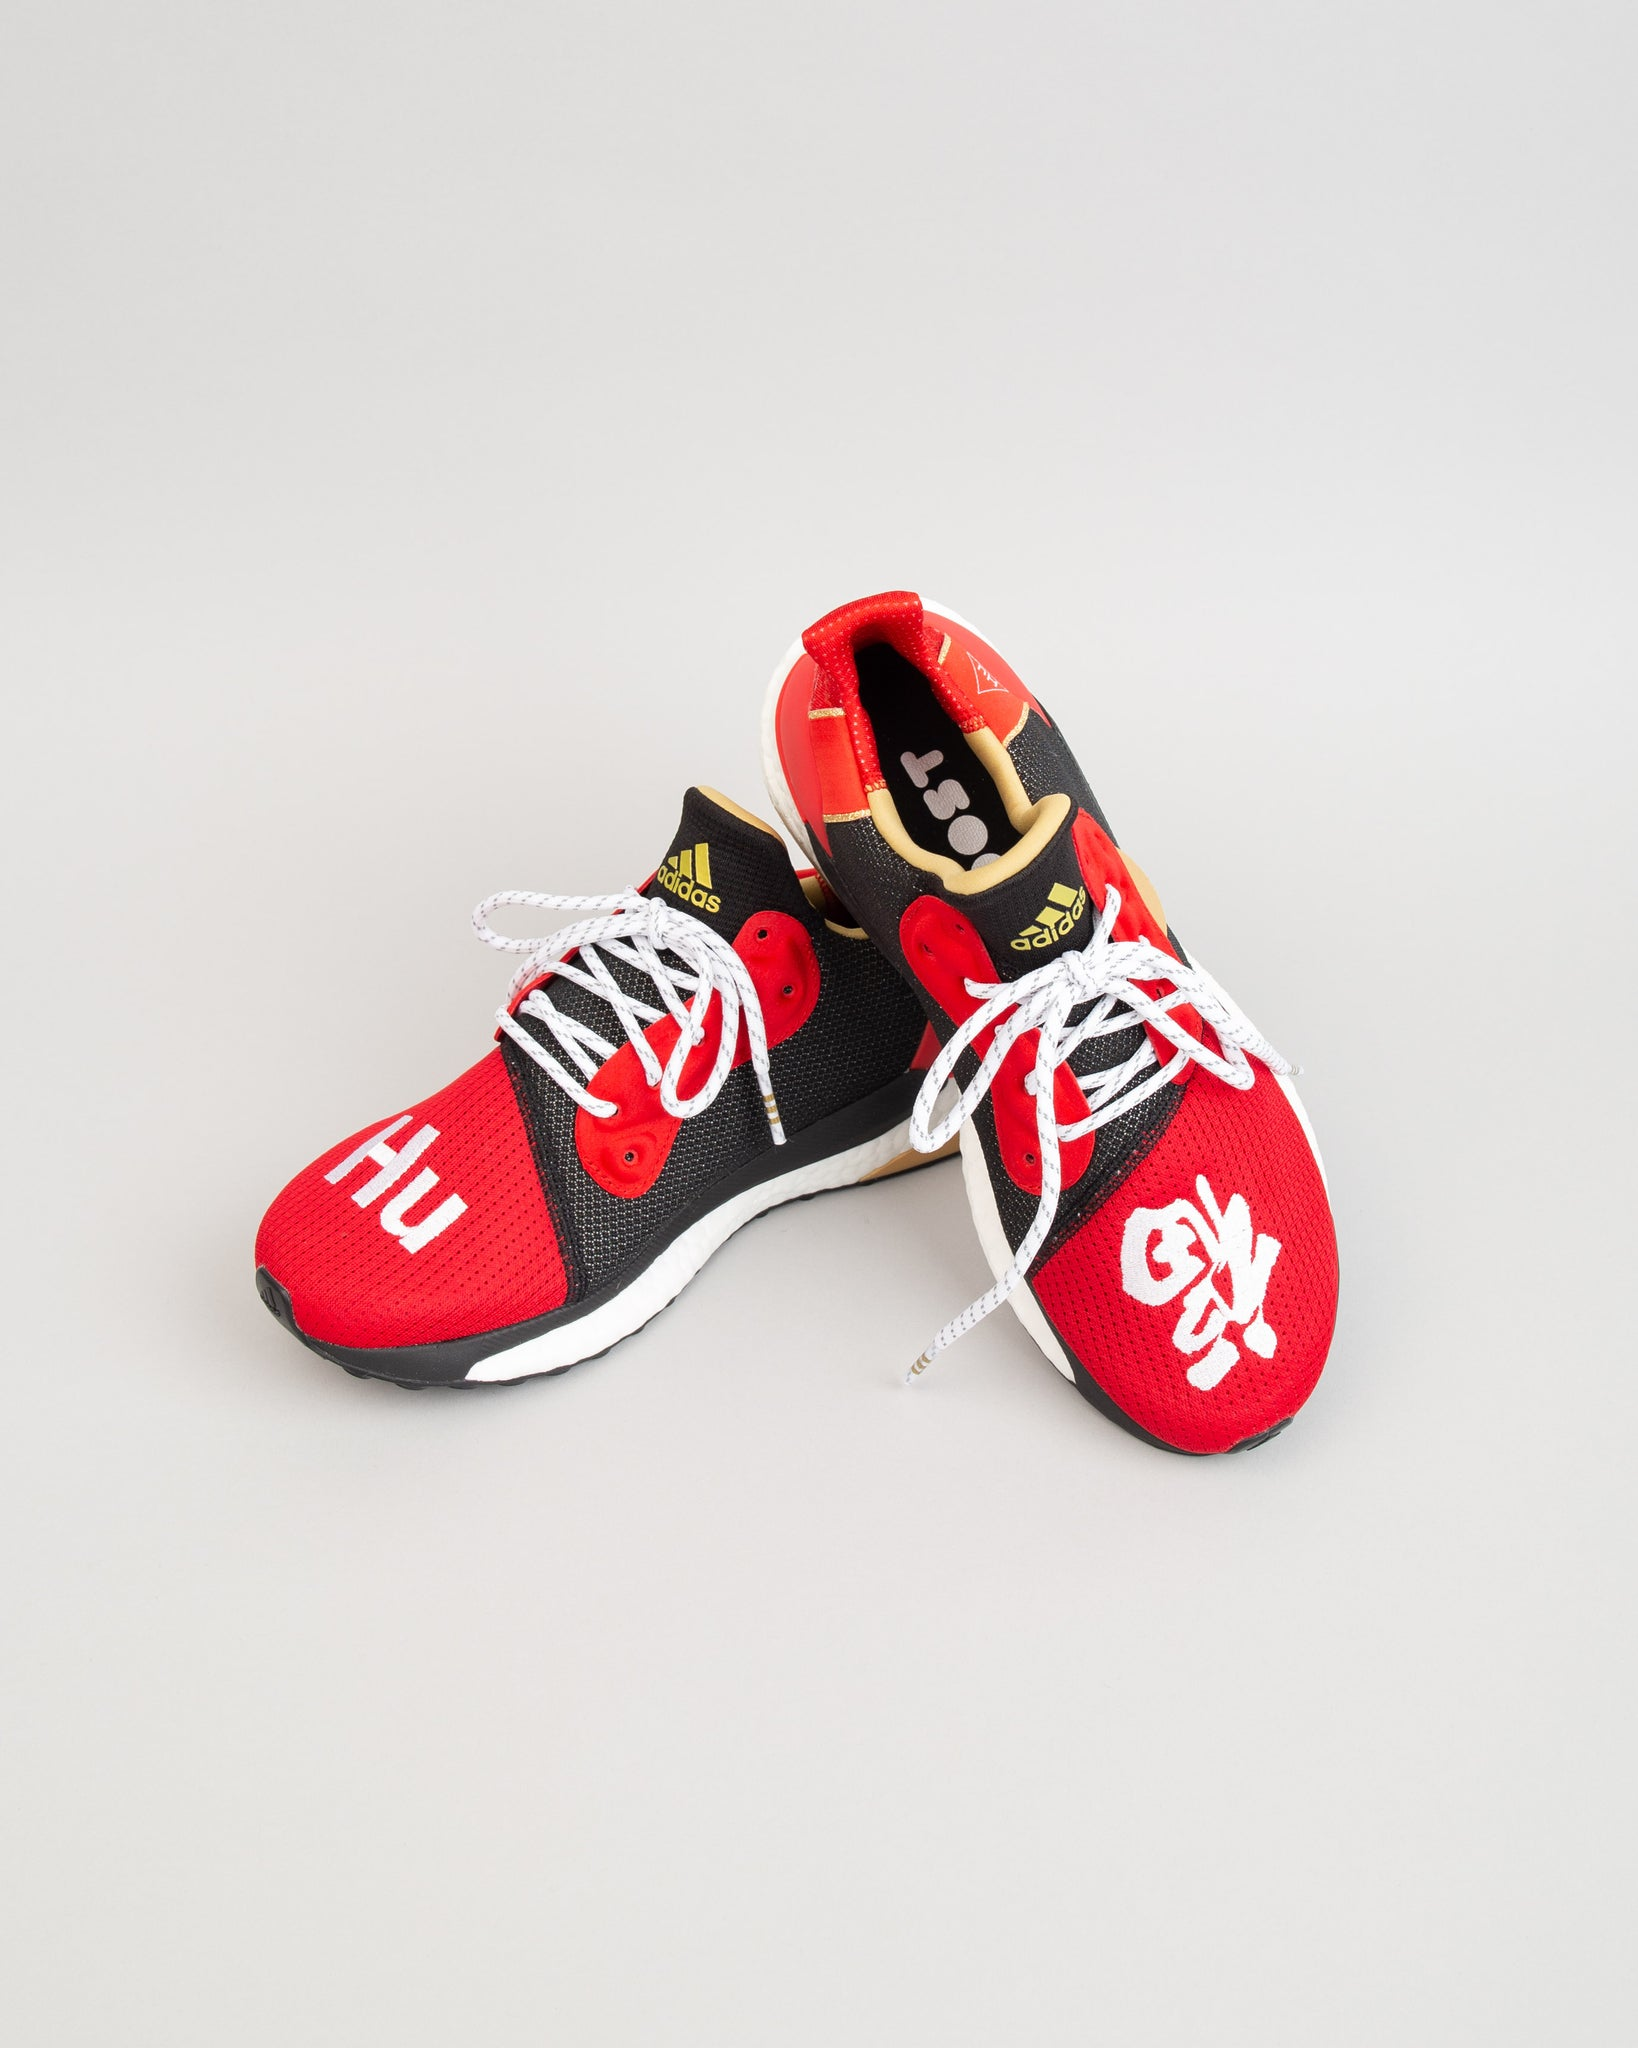 Pharrell Williams Solar HU Glide Chinese New Year